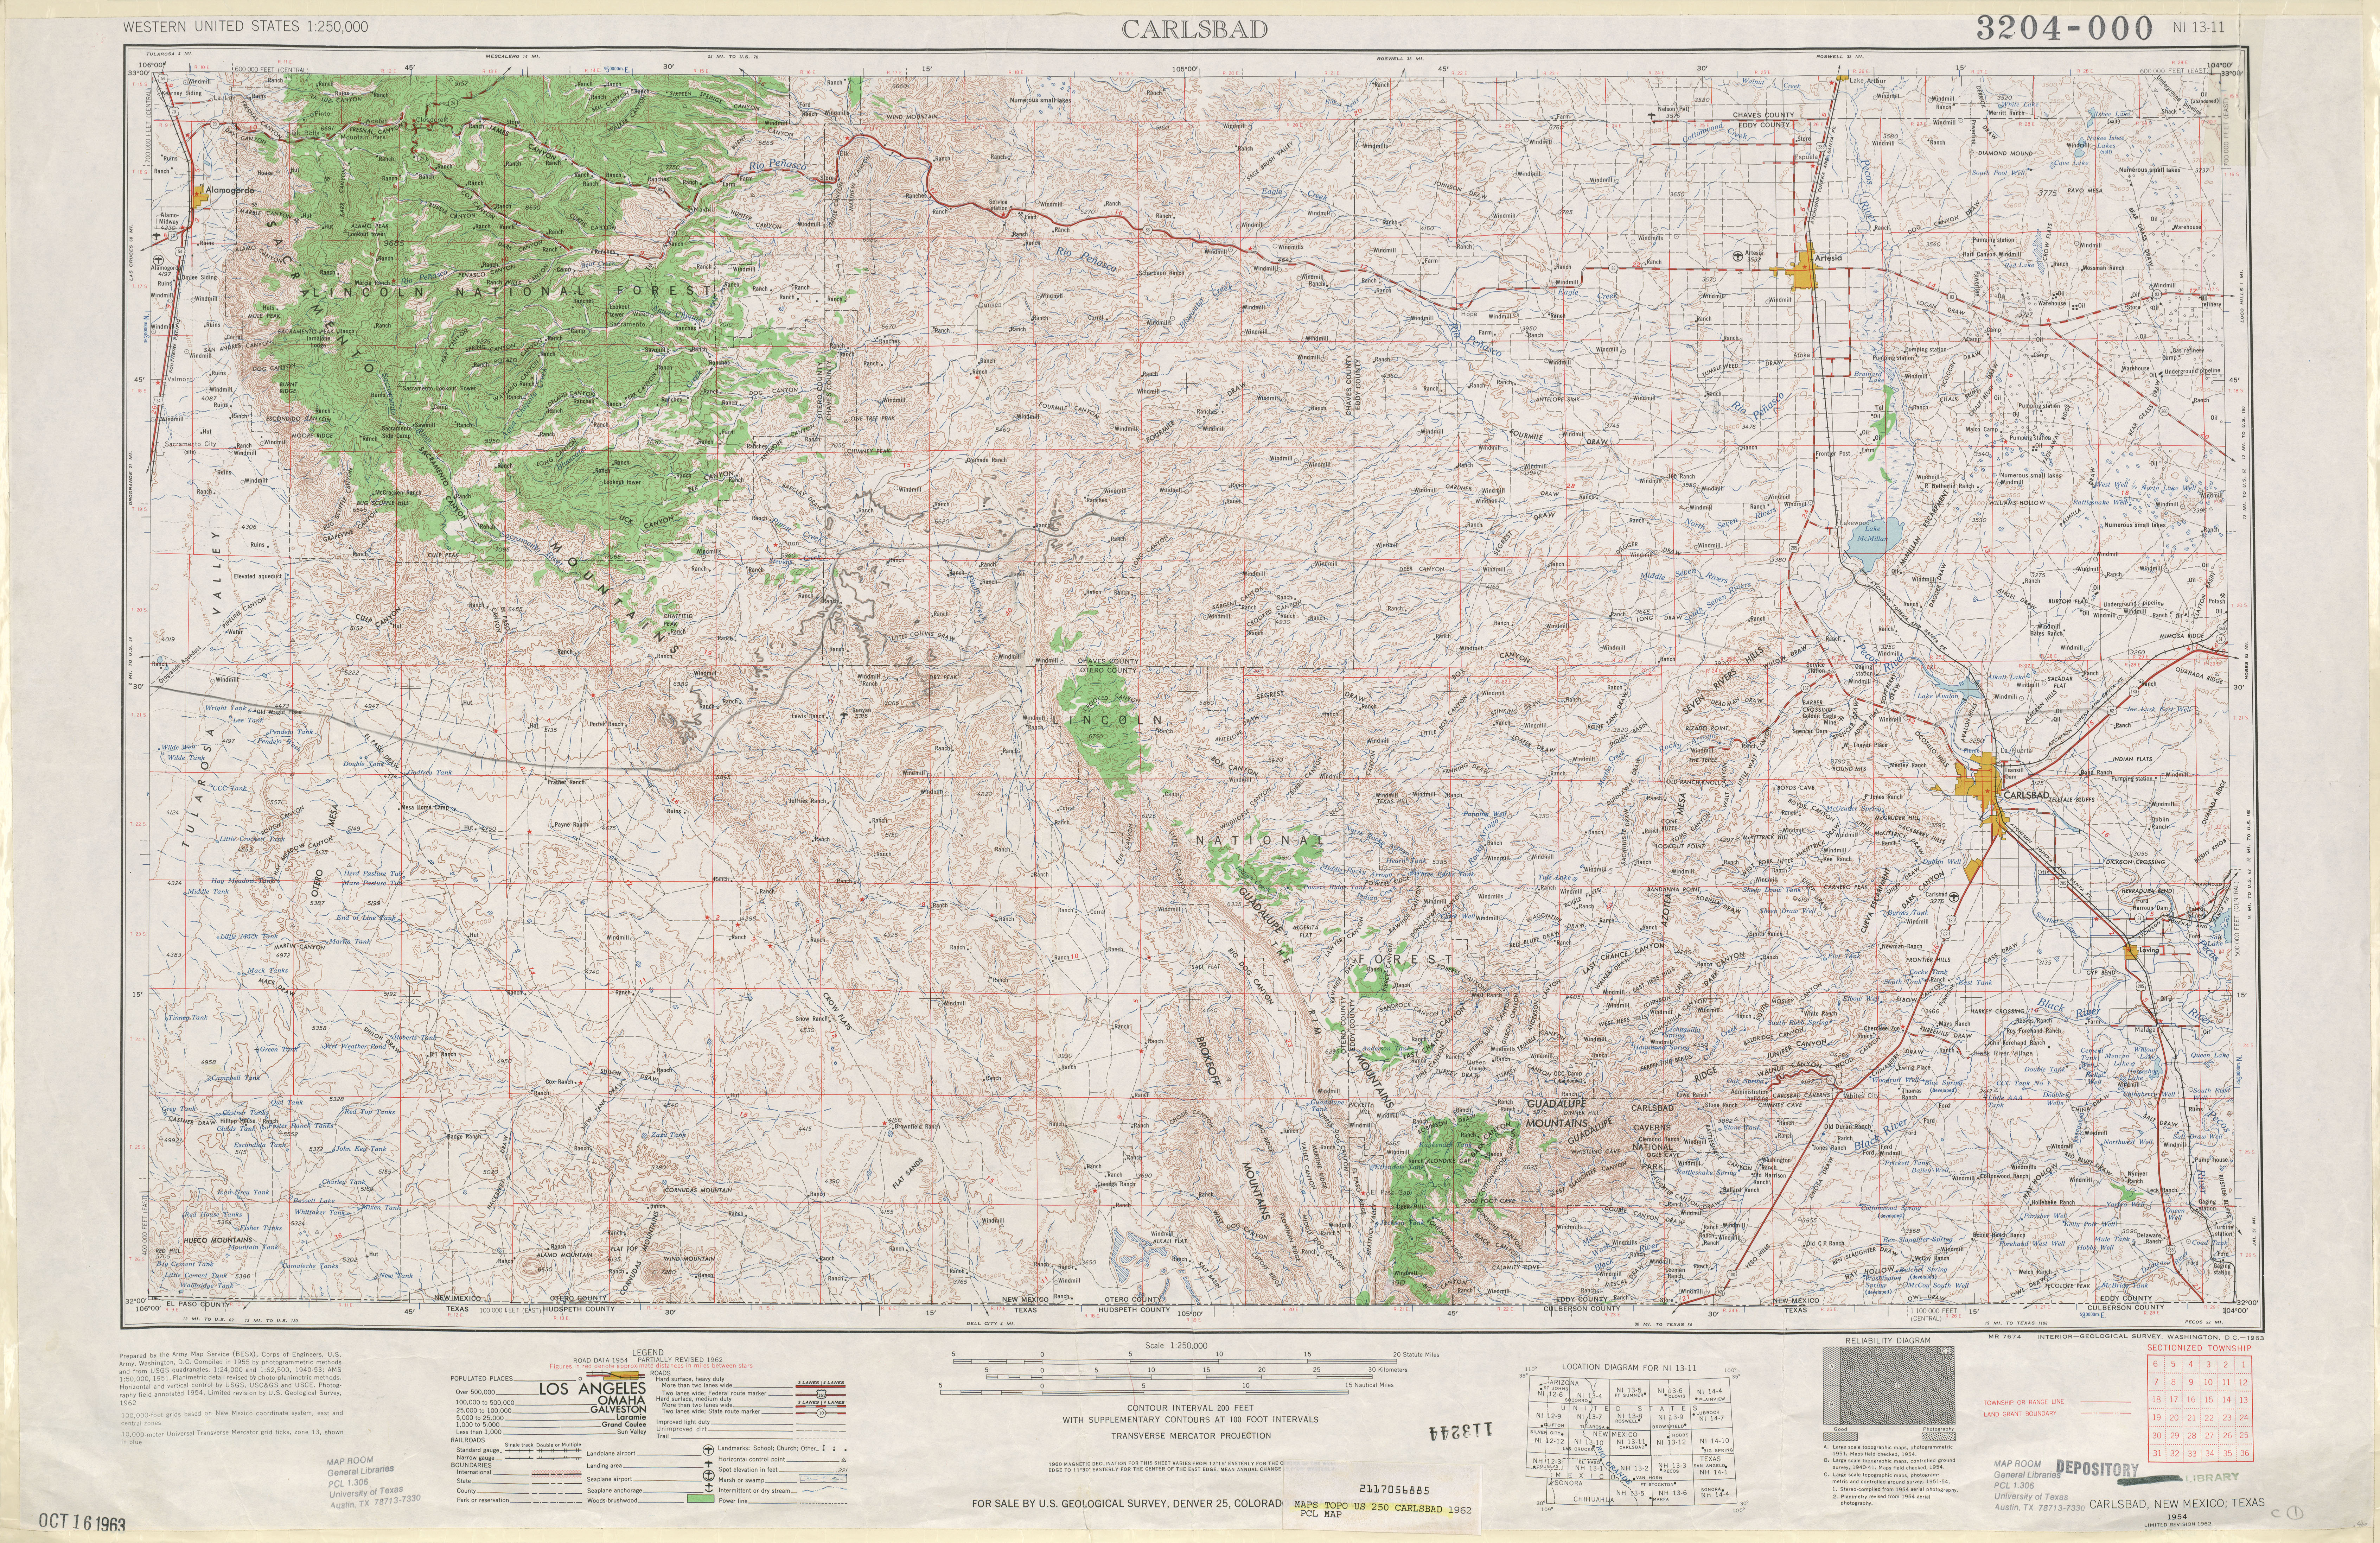 Carlsbad Topographic Map Sheet, United States 1962